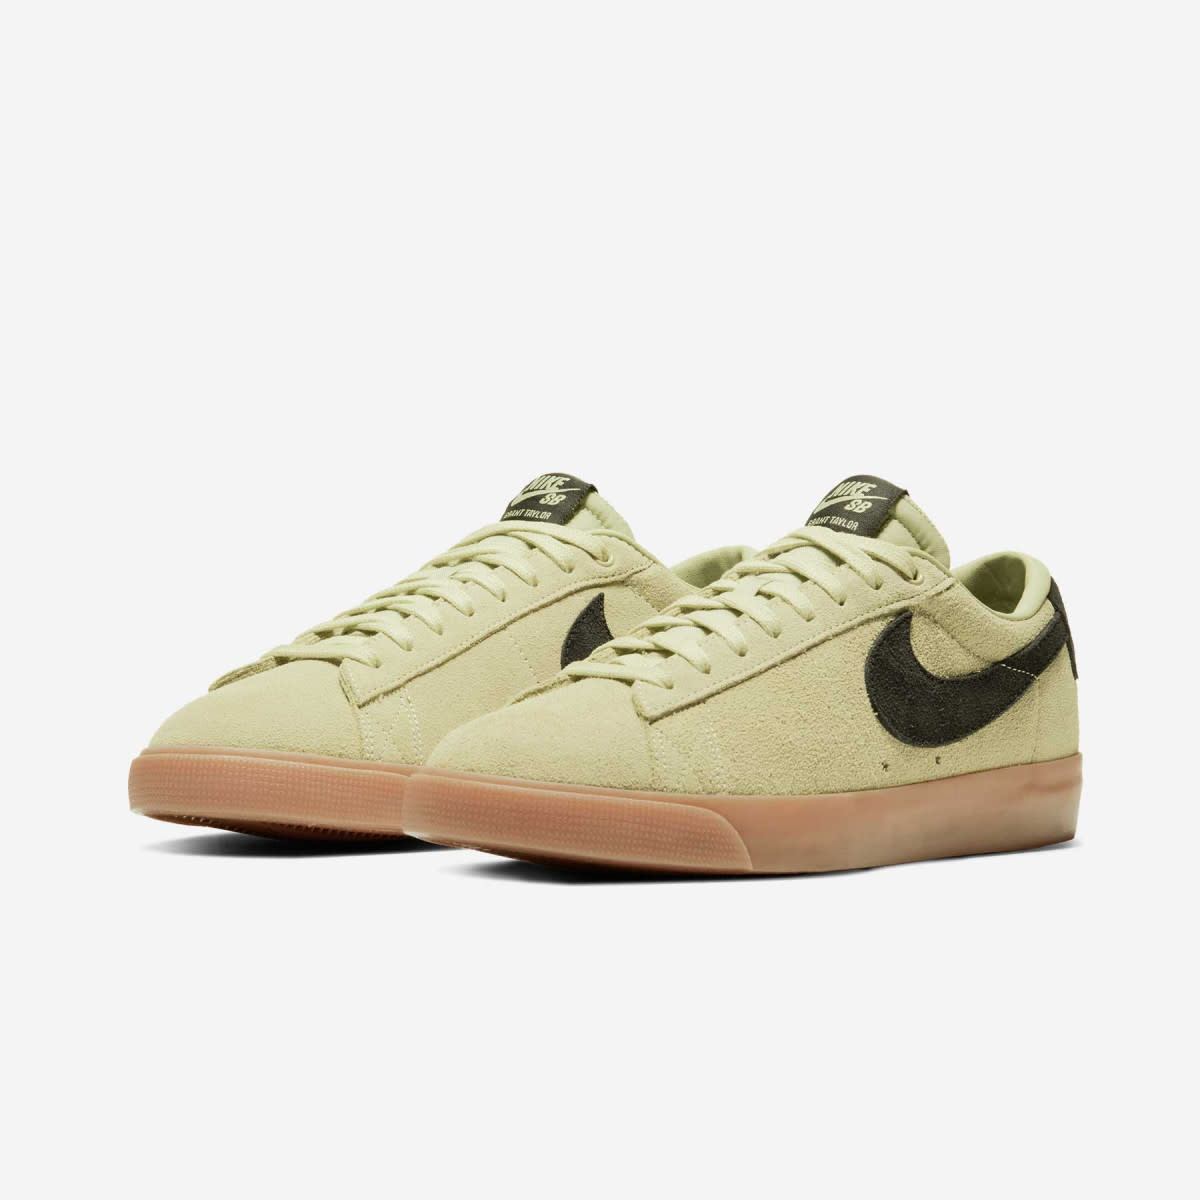 Nike USA, Inc. Nike SB Zoom Blazer Low GT Olive Aura/Black